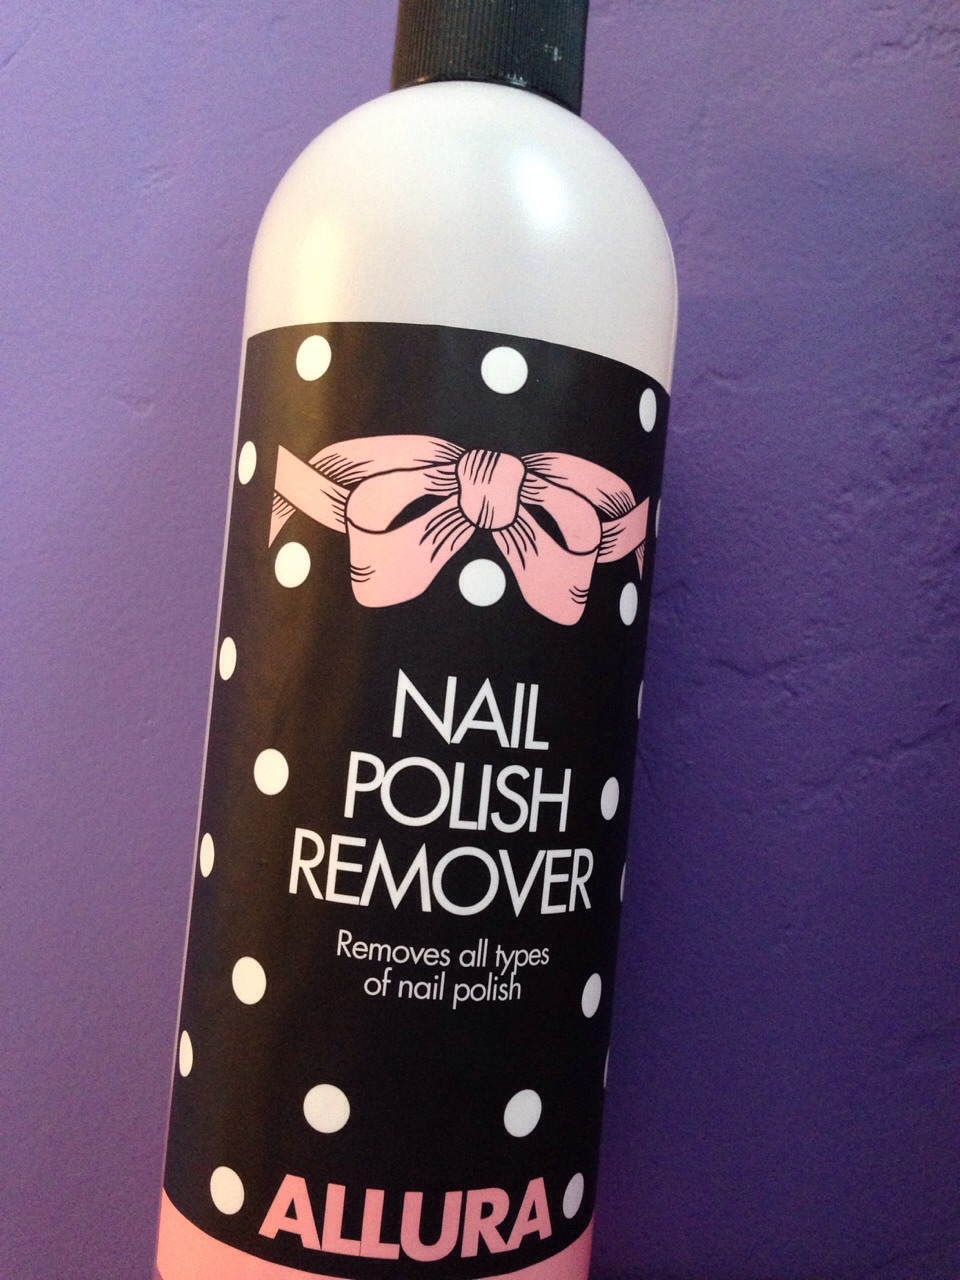 You'll need polish remover to remover any access polish or dirt